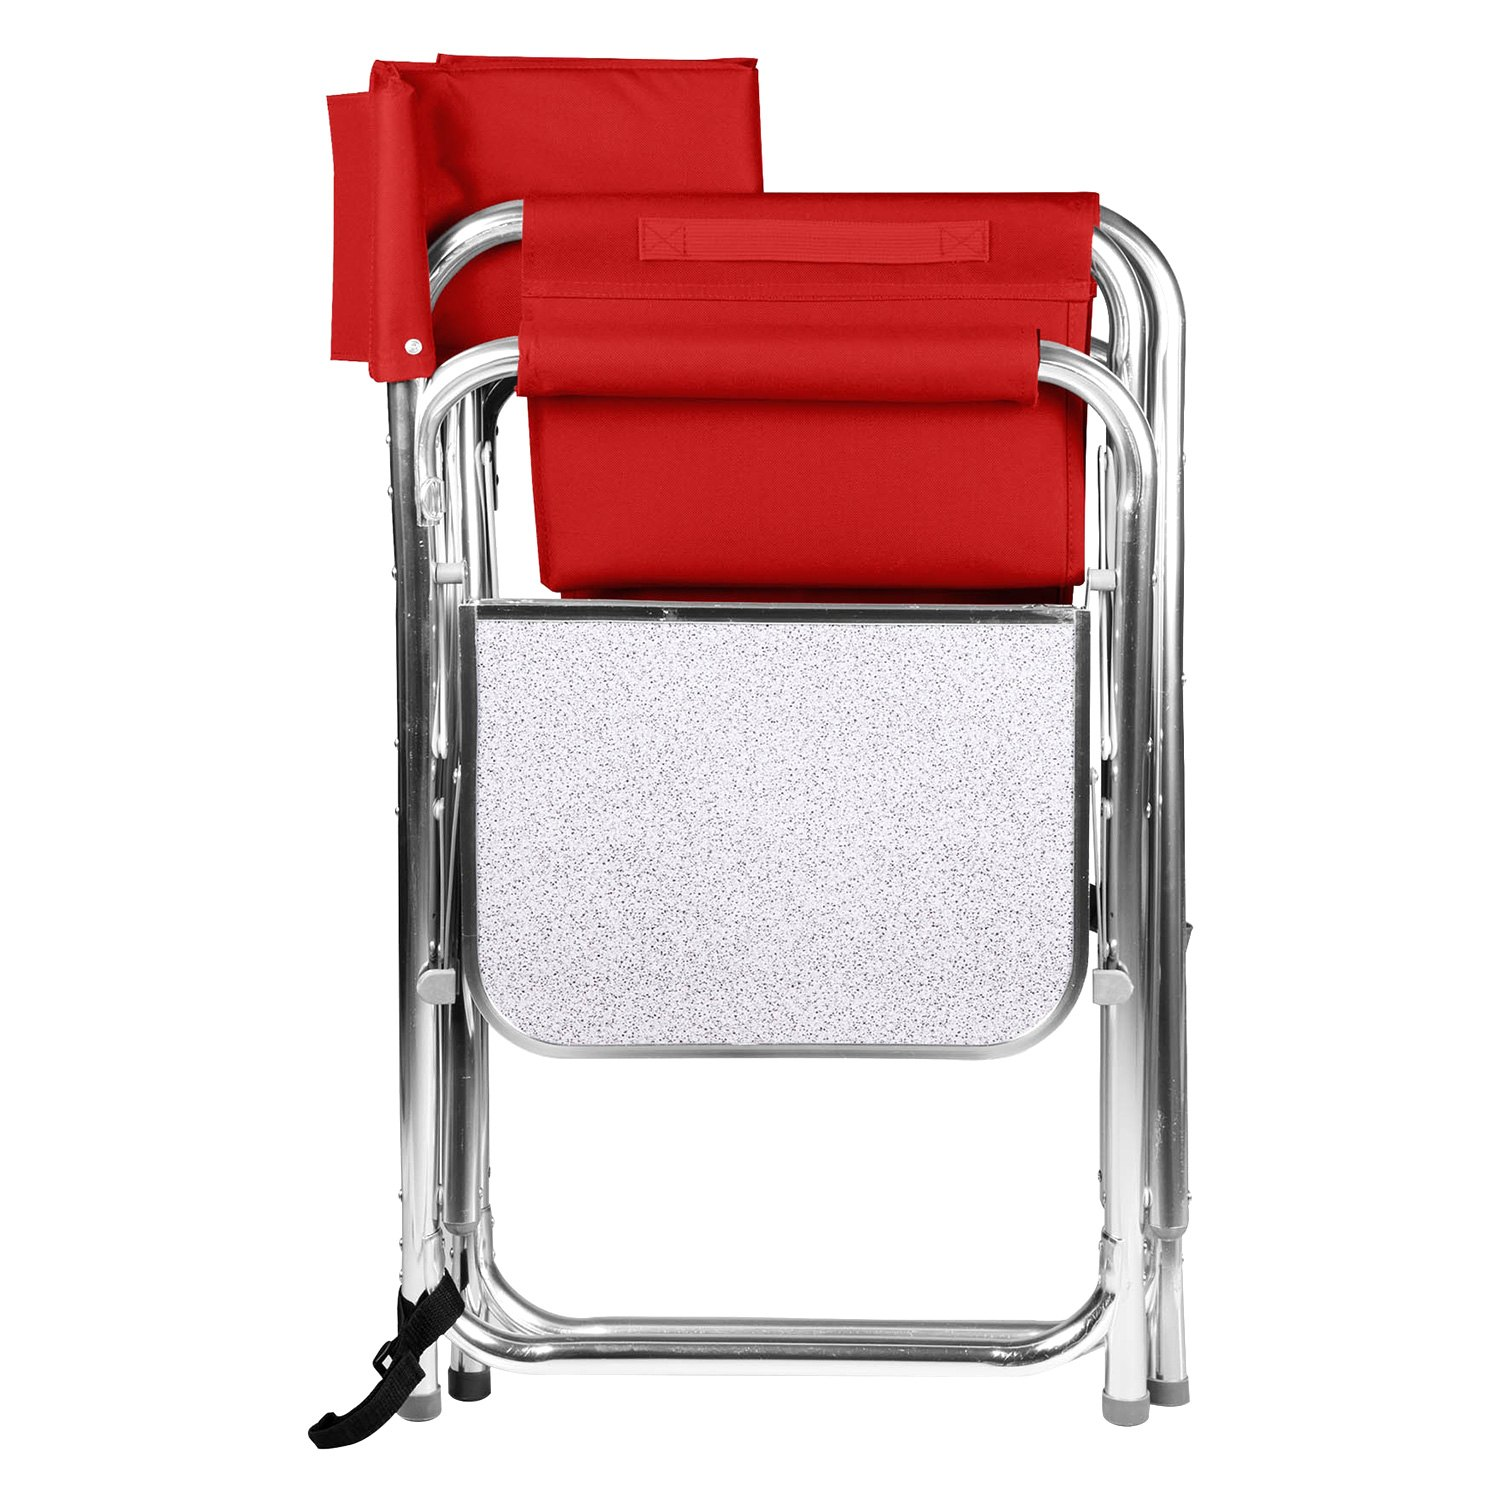 fishing chair add ons b and m garden covers picnic time® - coca-cola sports recreationid.com